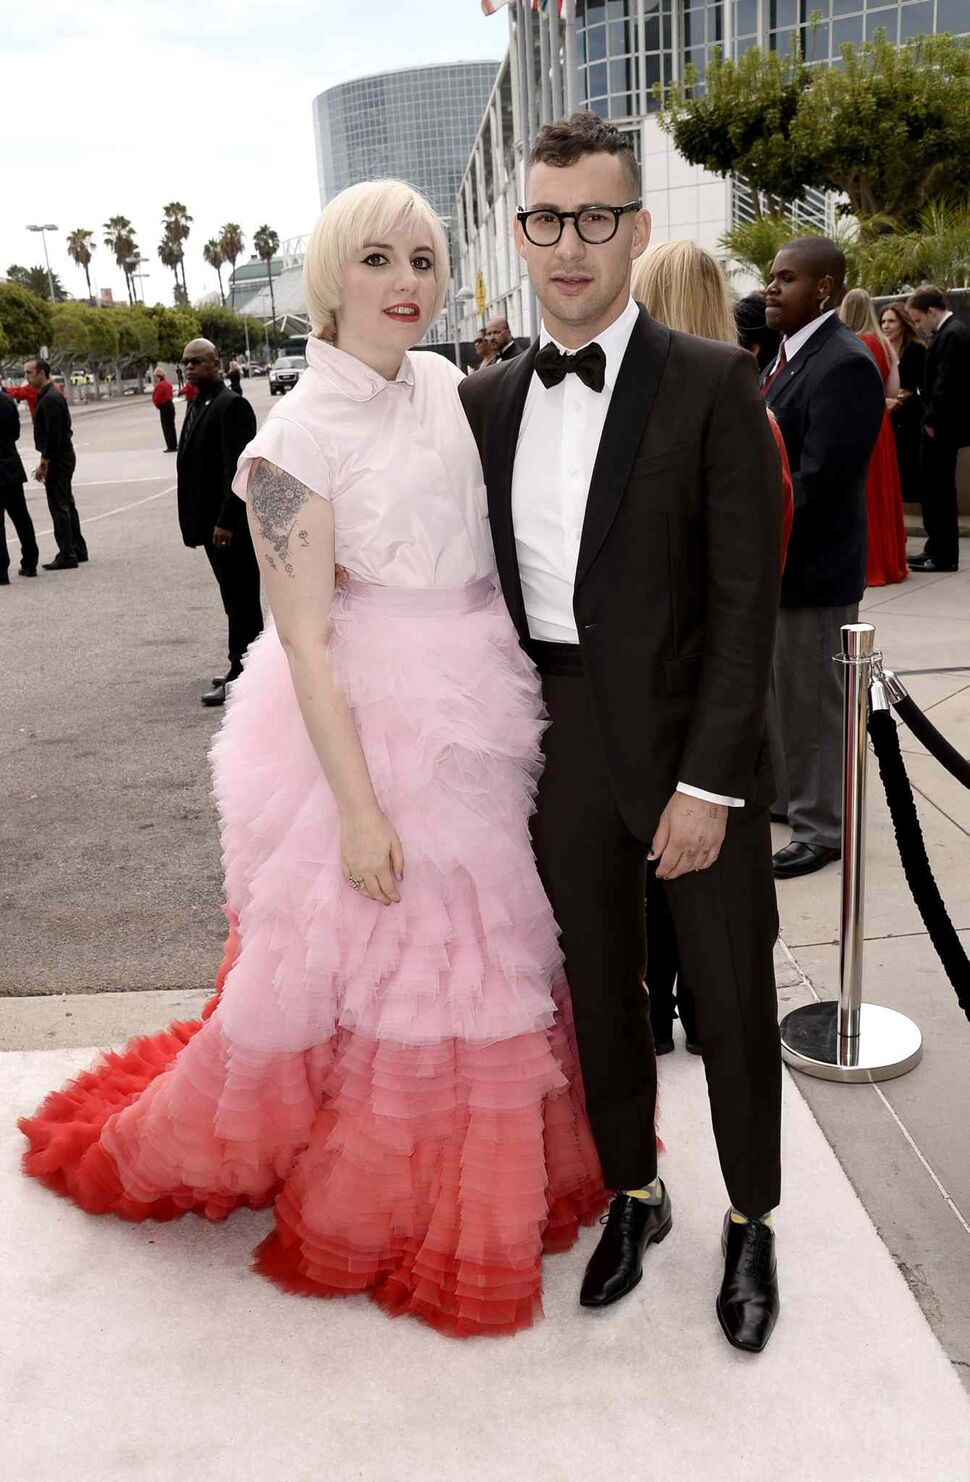 Lena Dunham (Girls), left, and Jack Antonoff arrive at the 66th Primetime Emmy Awards at the Nokia Theatre L.A. Live Monday. (Evan Agostini/Invision for the Television Academy/AP Images)